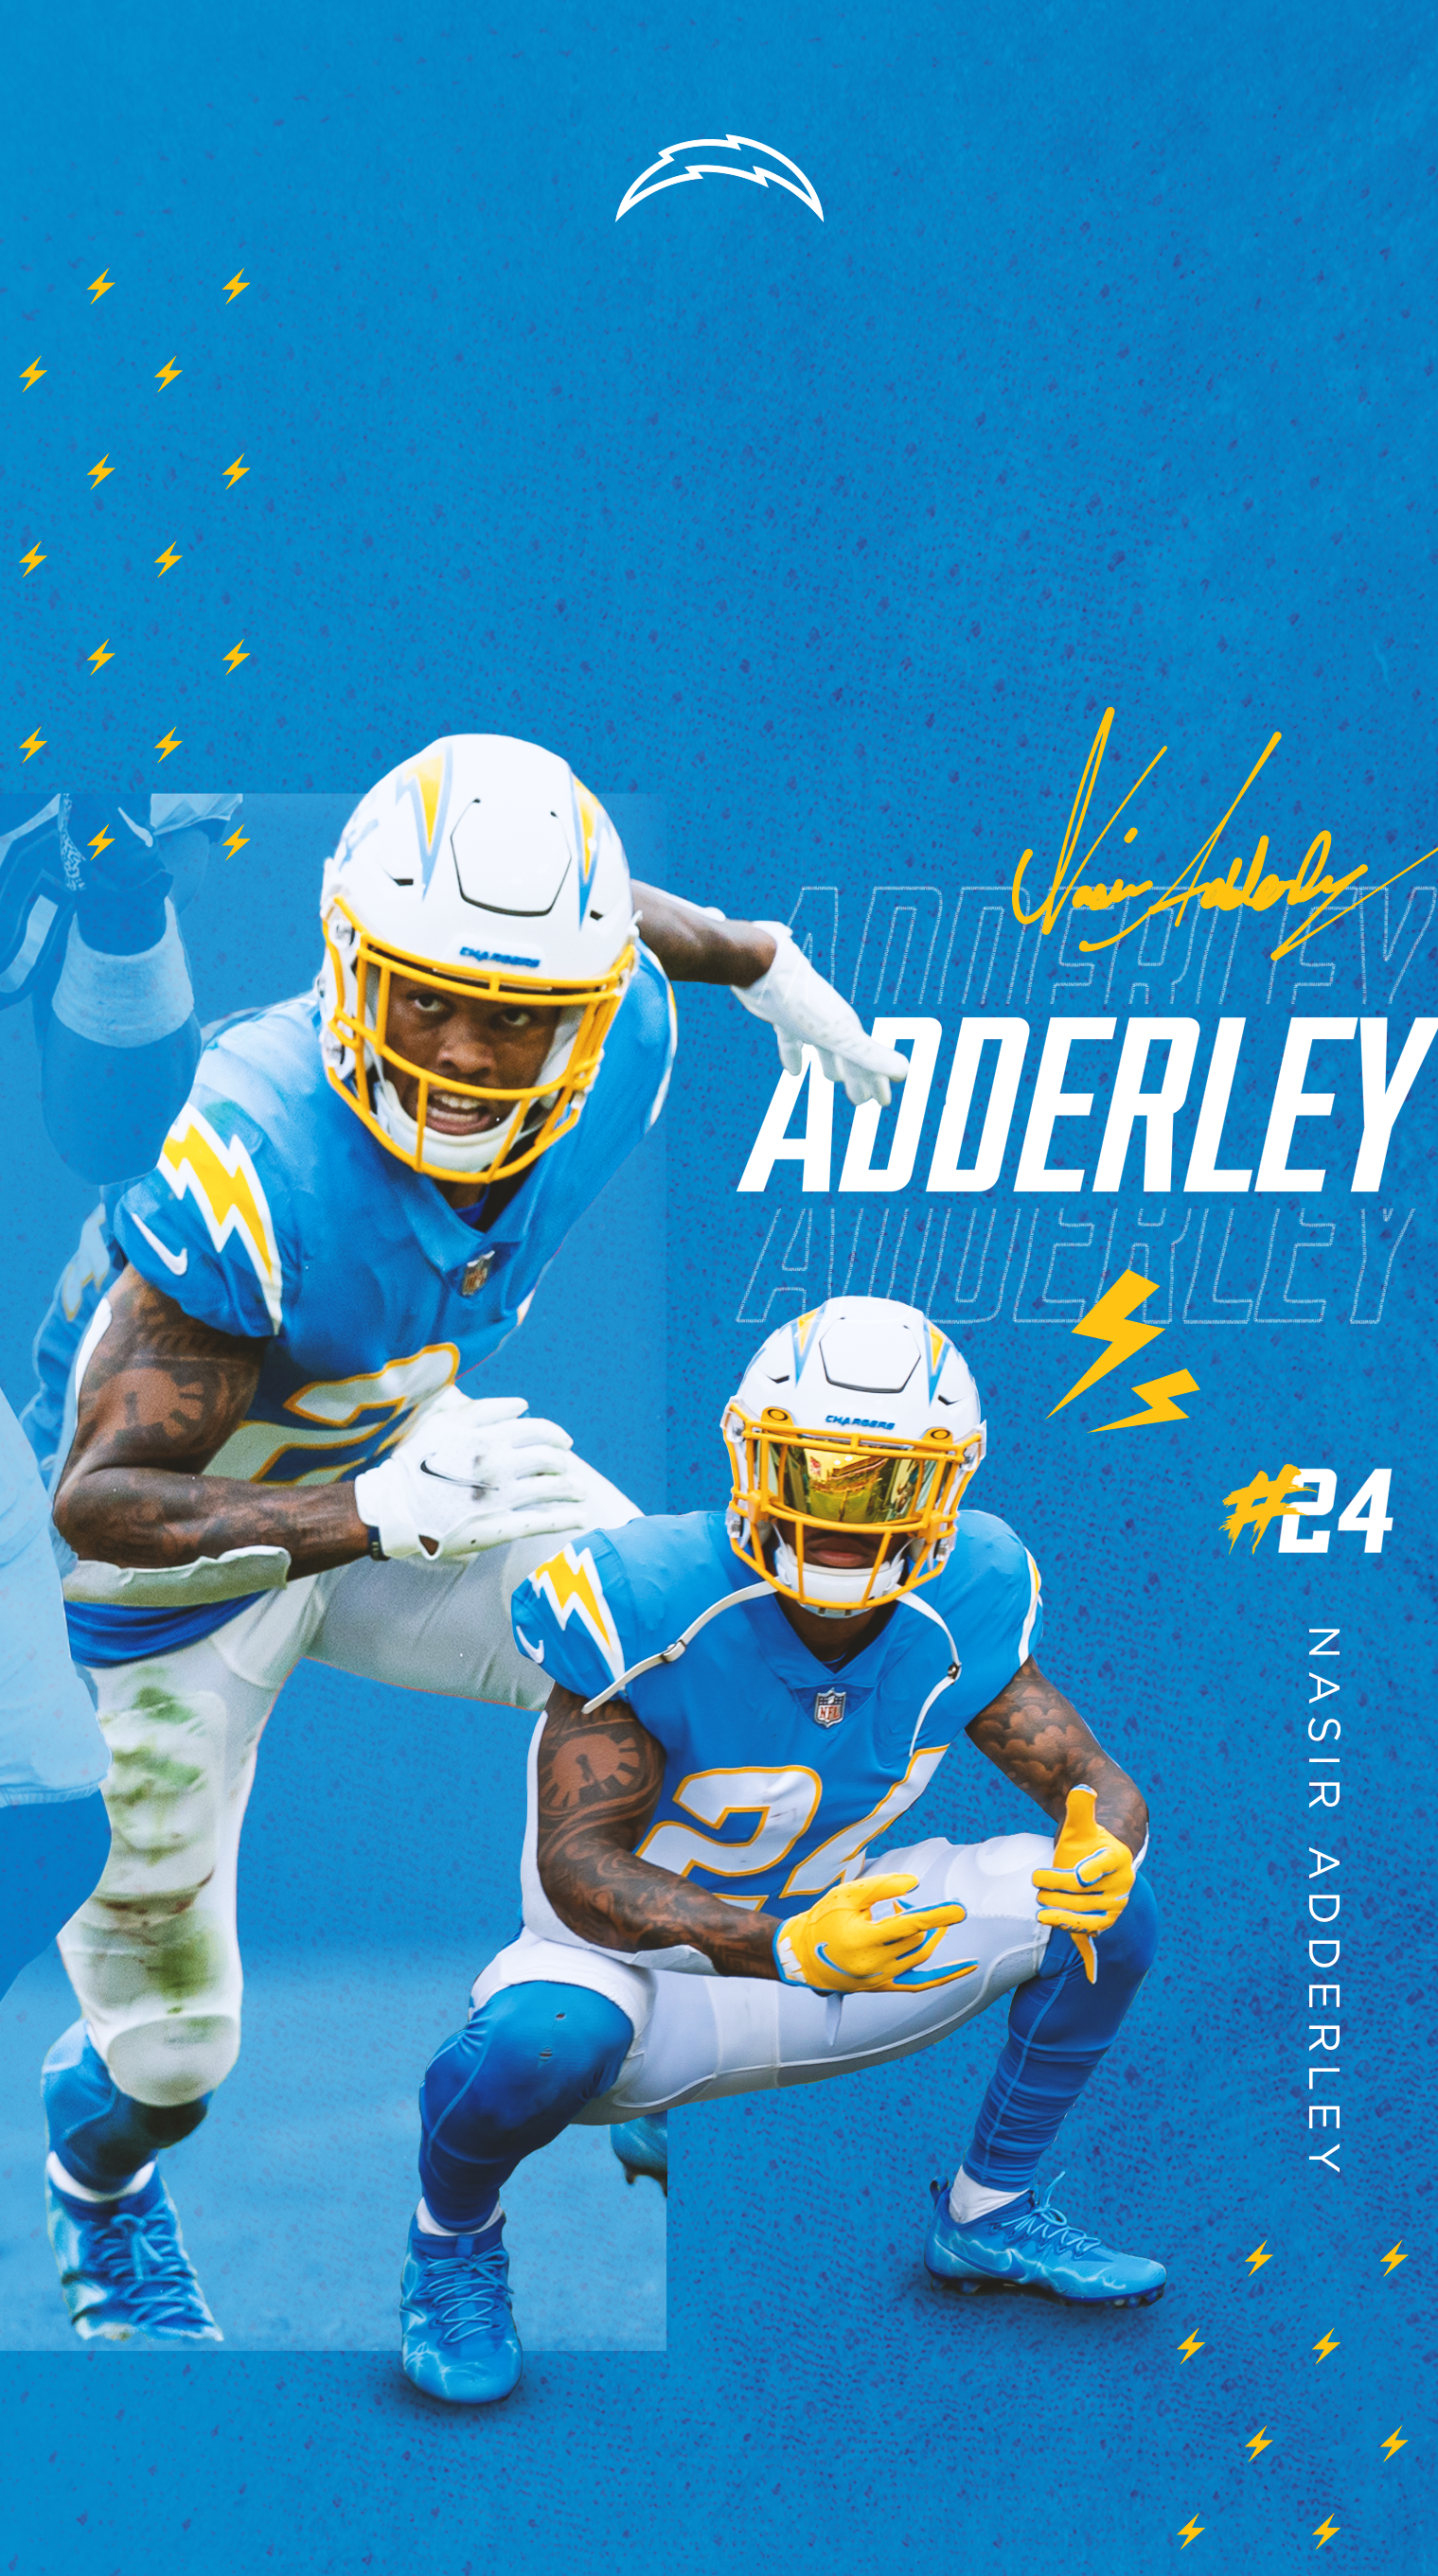 100620_Wallpaper-N_ADDERLEY